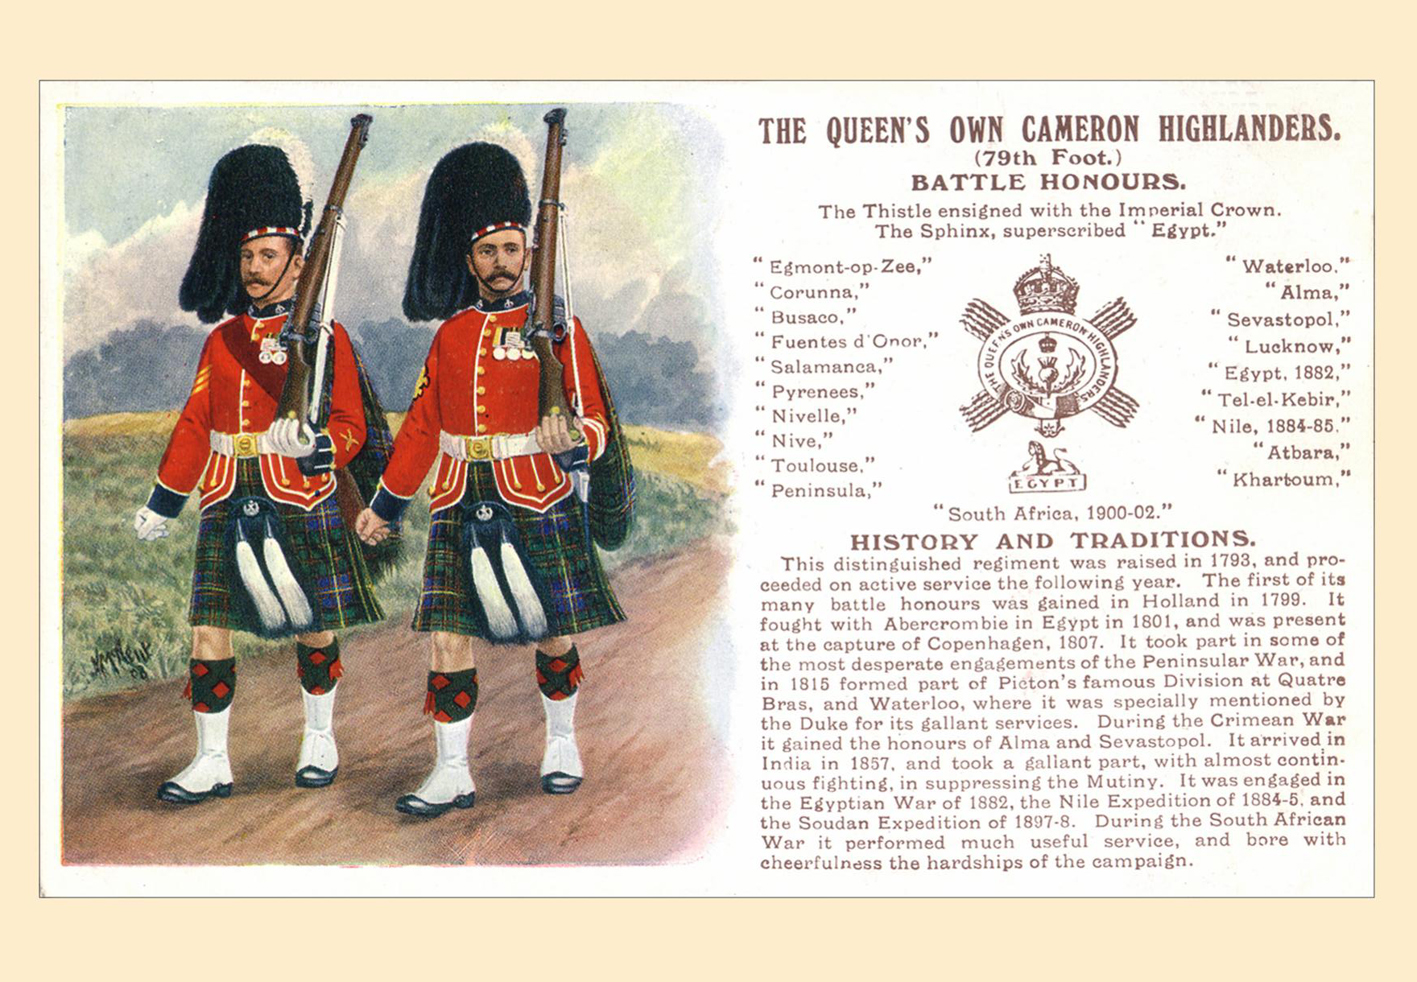 Postcard - The Queen's Own Cameron Highlanders (79th Foot) Battle Honours